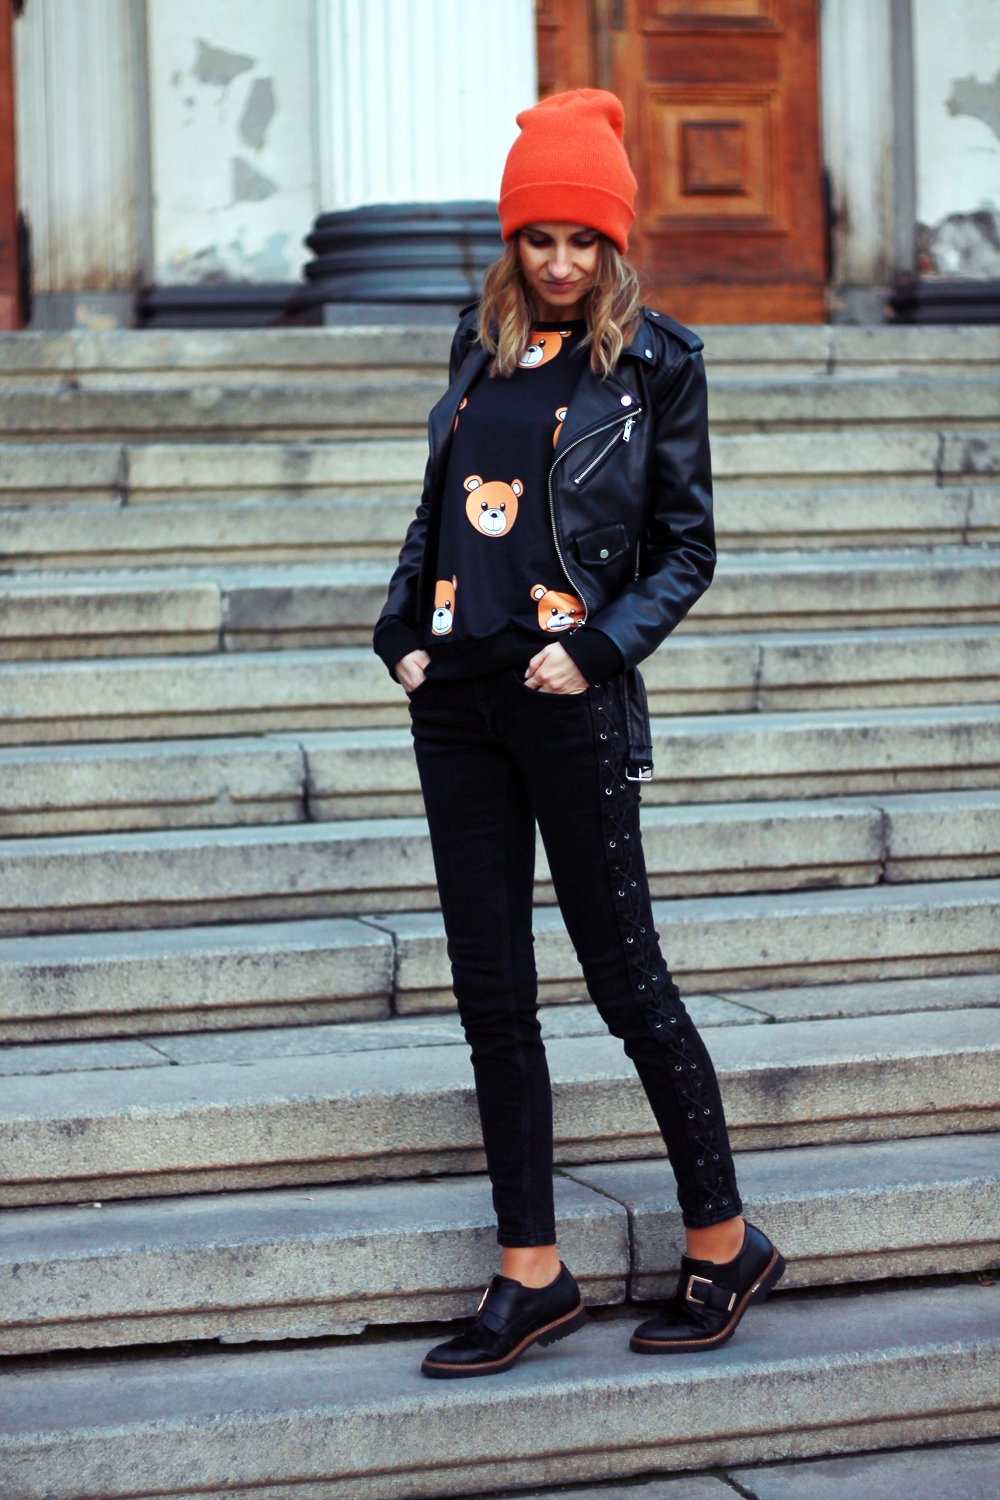 fashion love street style grunge bear sweatshirt zara tumblr girl orange